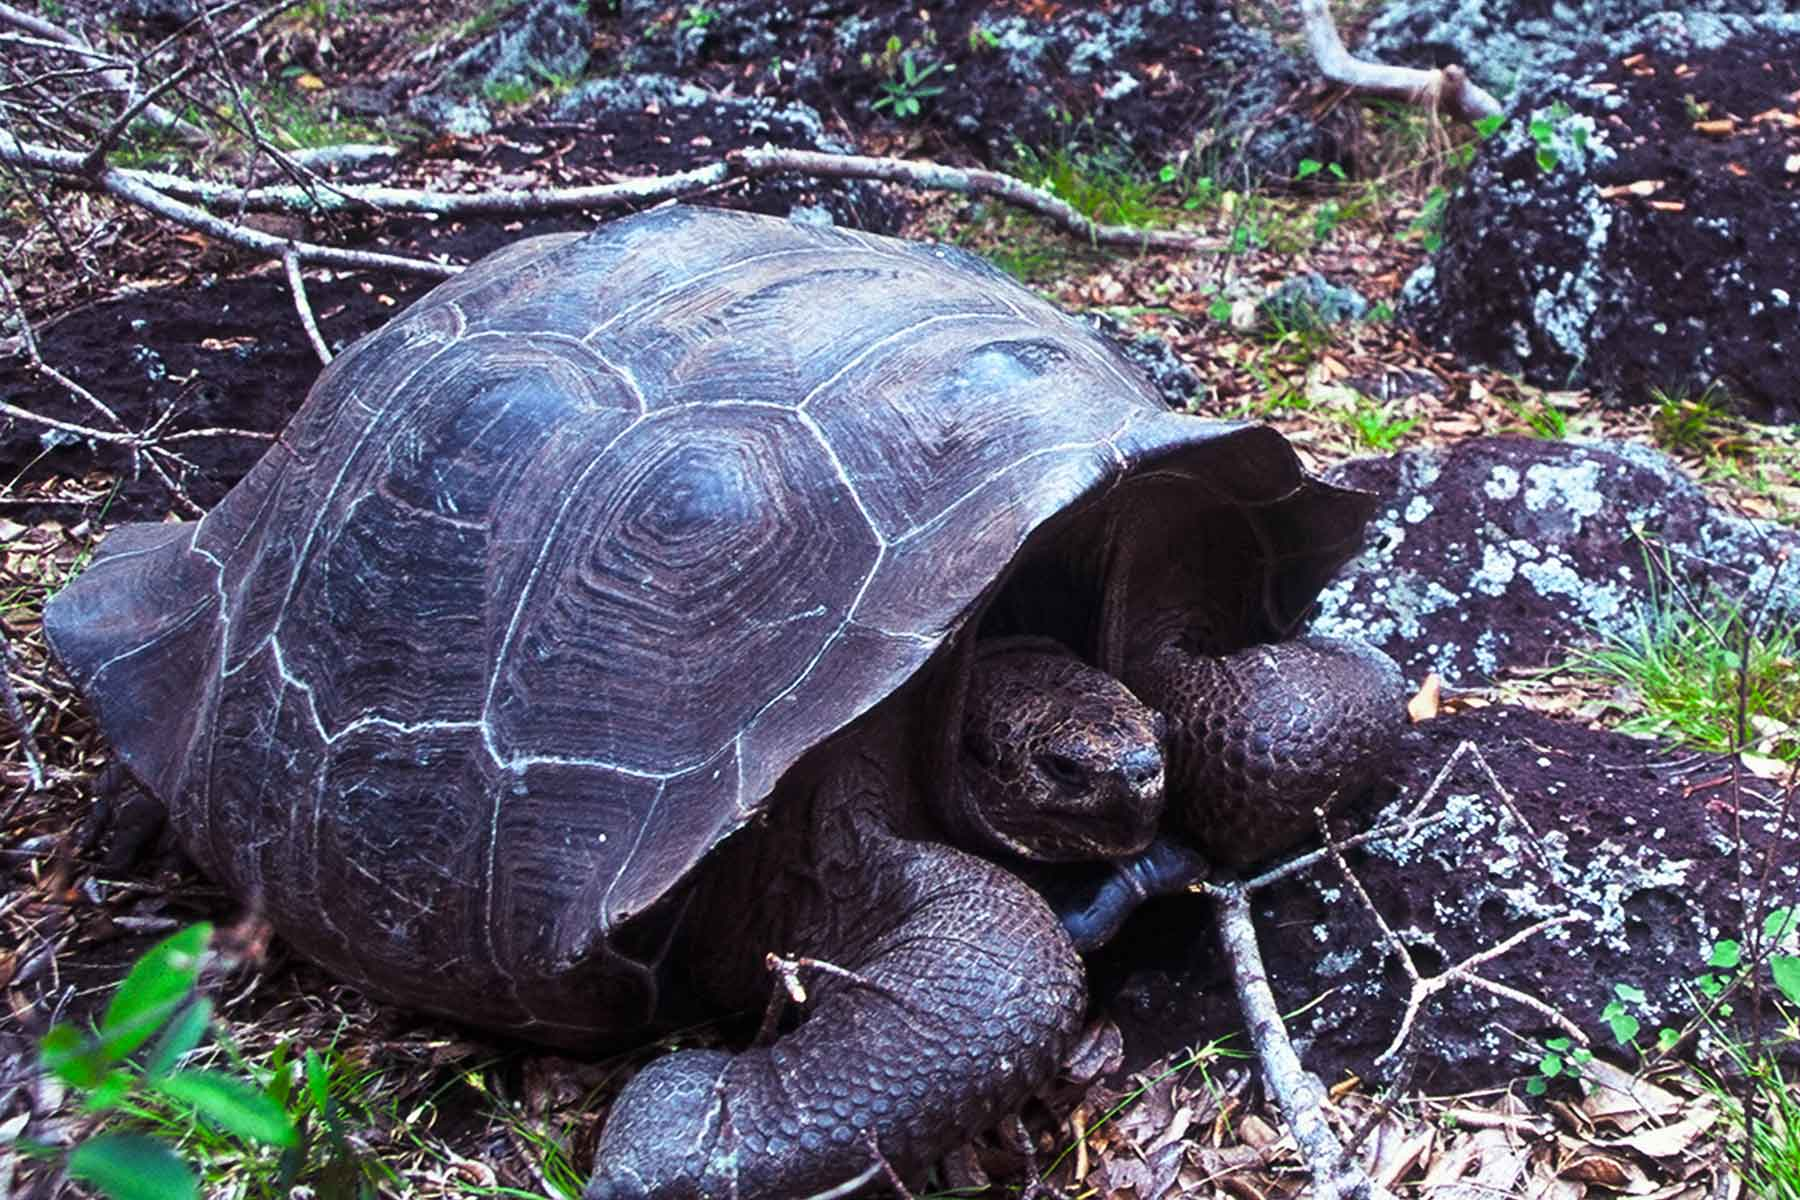 Galapagos Tortoise | USFQ | Steven Andrew Martin PhD | Environmental Research | Study Abroad Journal